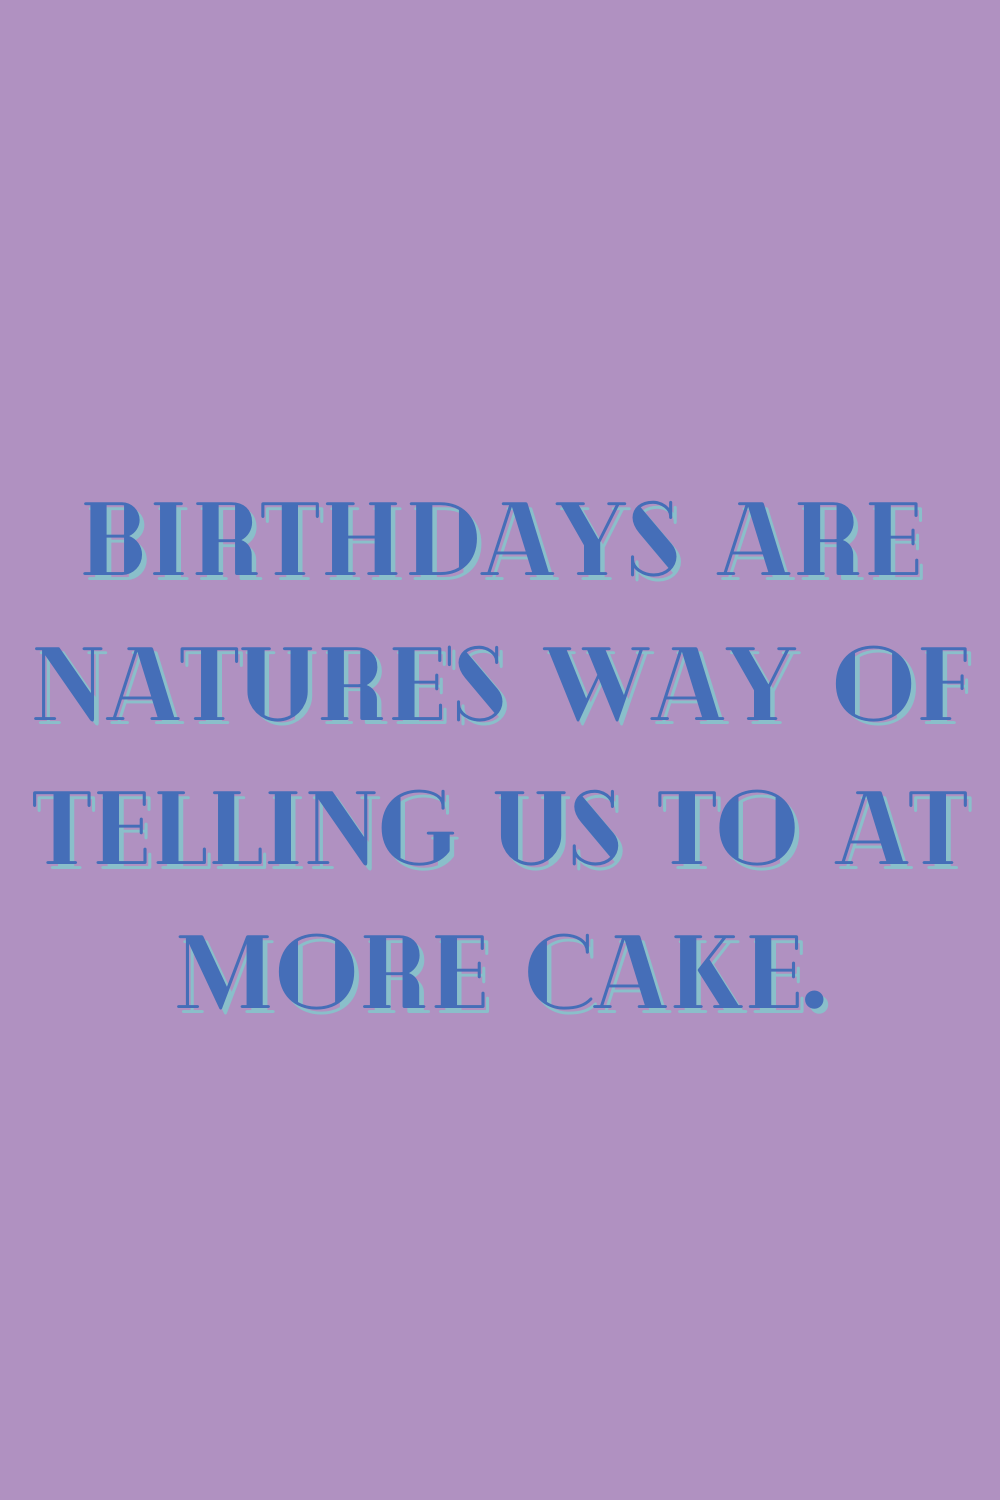 Funny Quotes About Birthday Cake